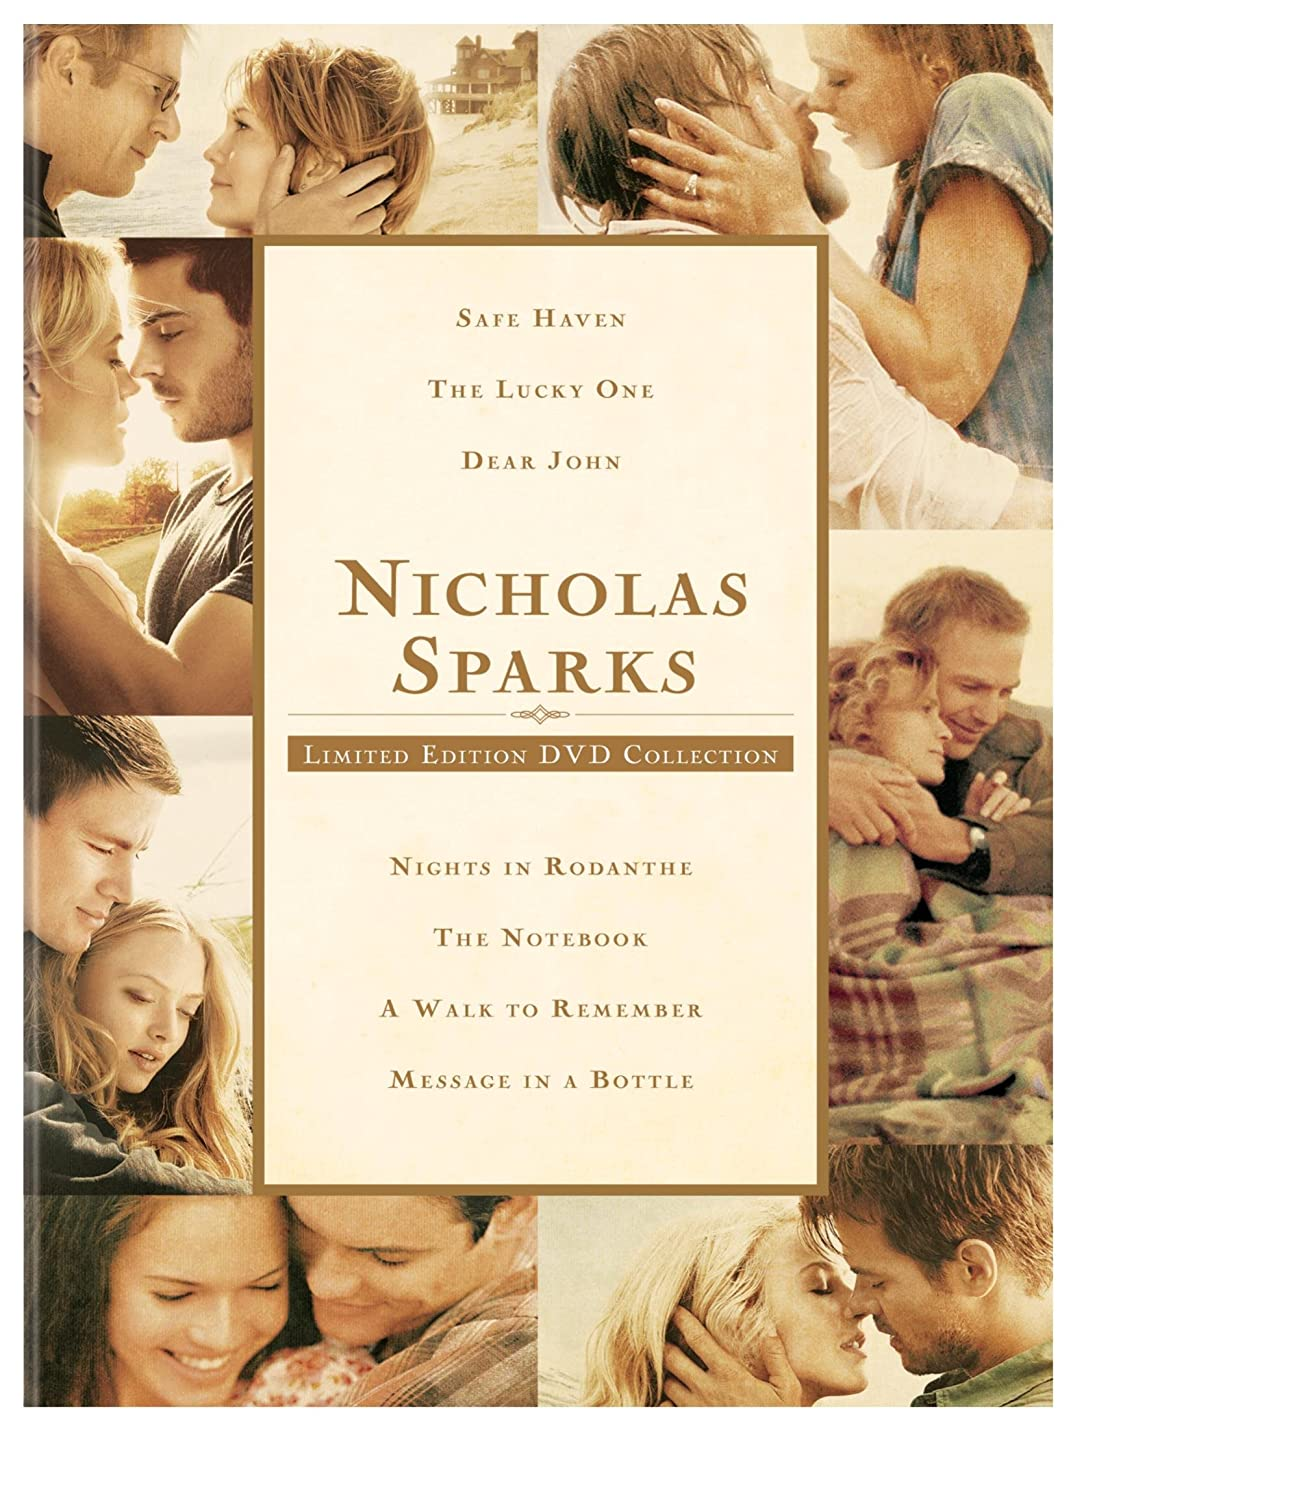 http://www.amazon.com/Nicholas-Sparks-Limited-Edition-Collection/dp/B00GM4UJQI/